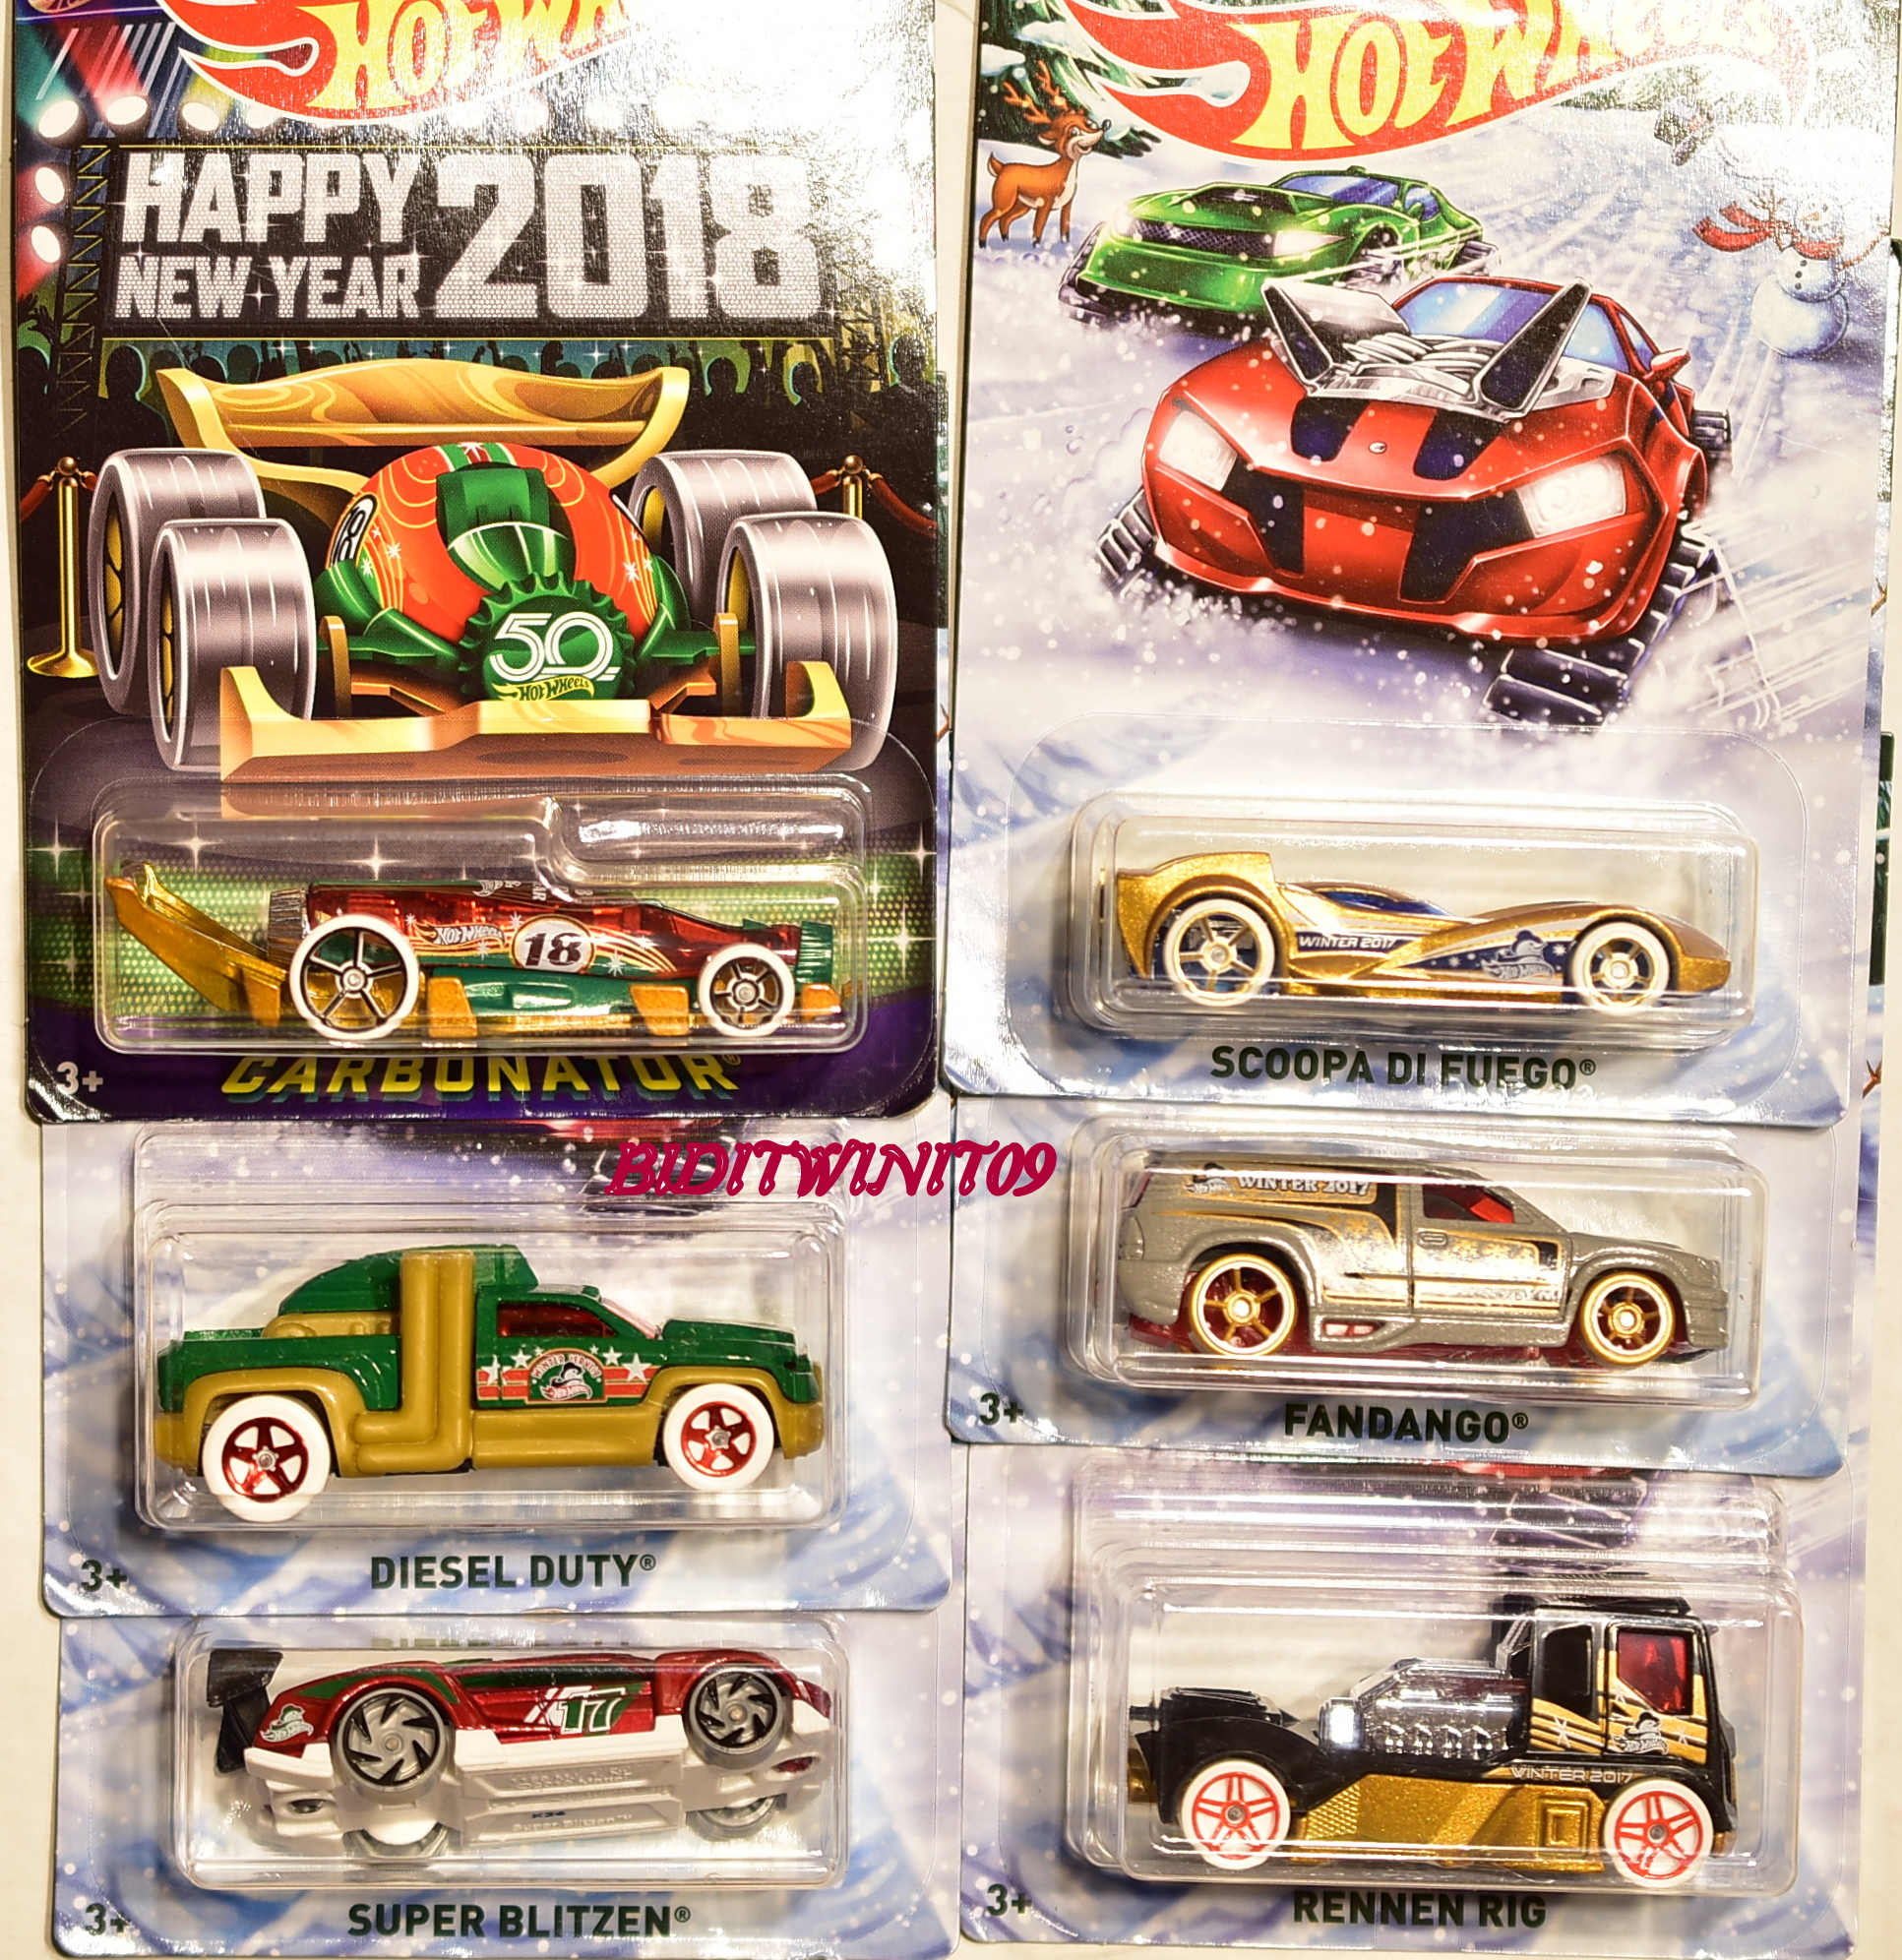 HOT WHEELS 2017 HOLIDAY HOT RODS SET OF 6 INCLUDES NEW YEAR